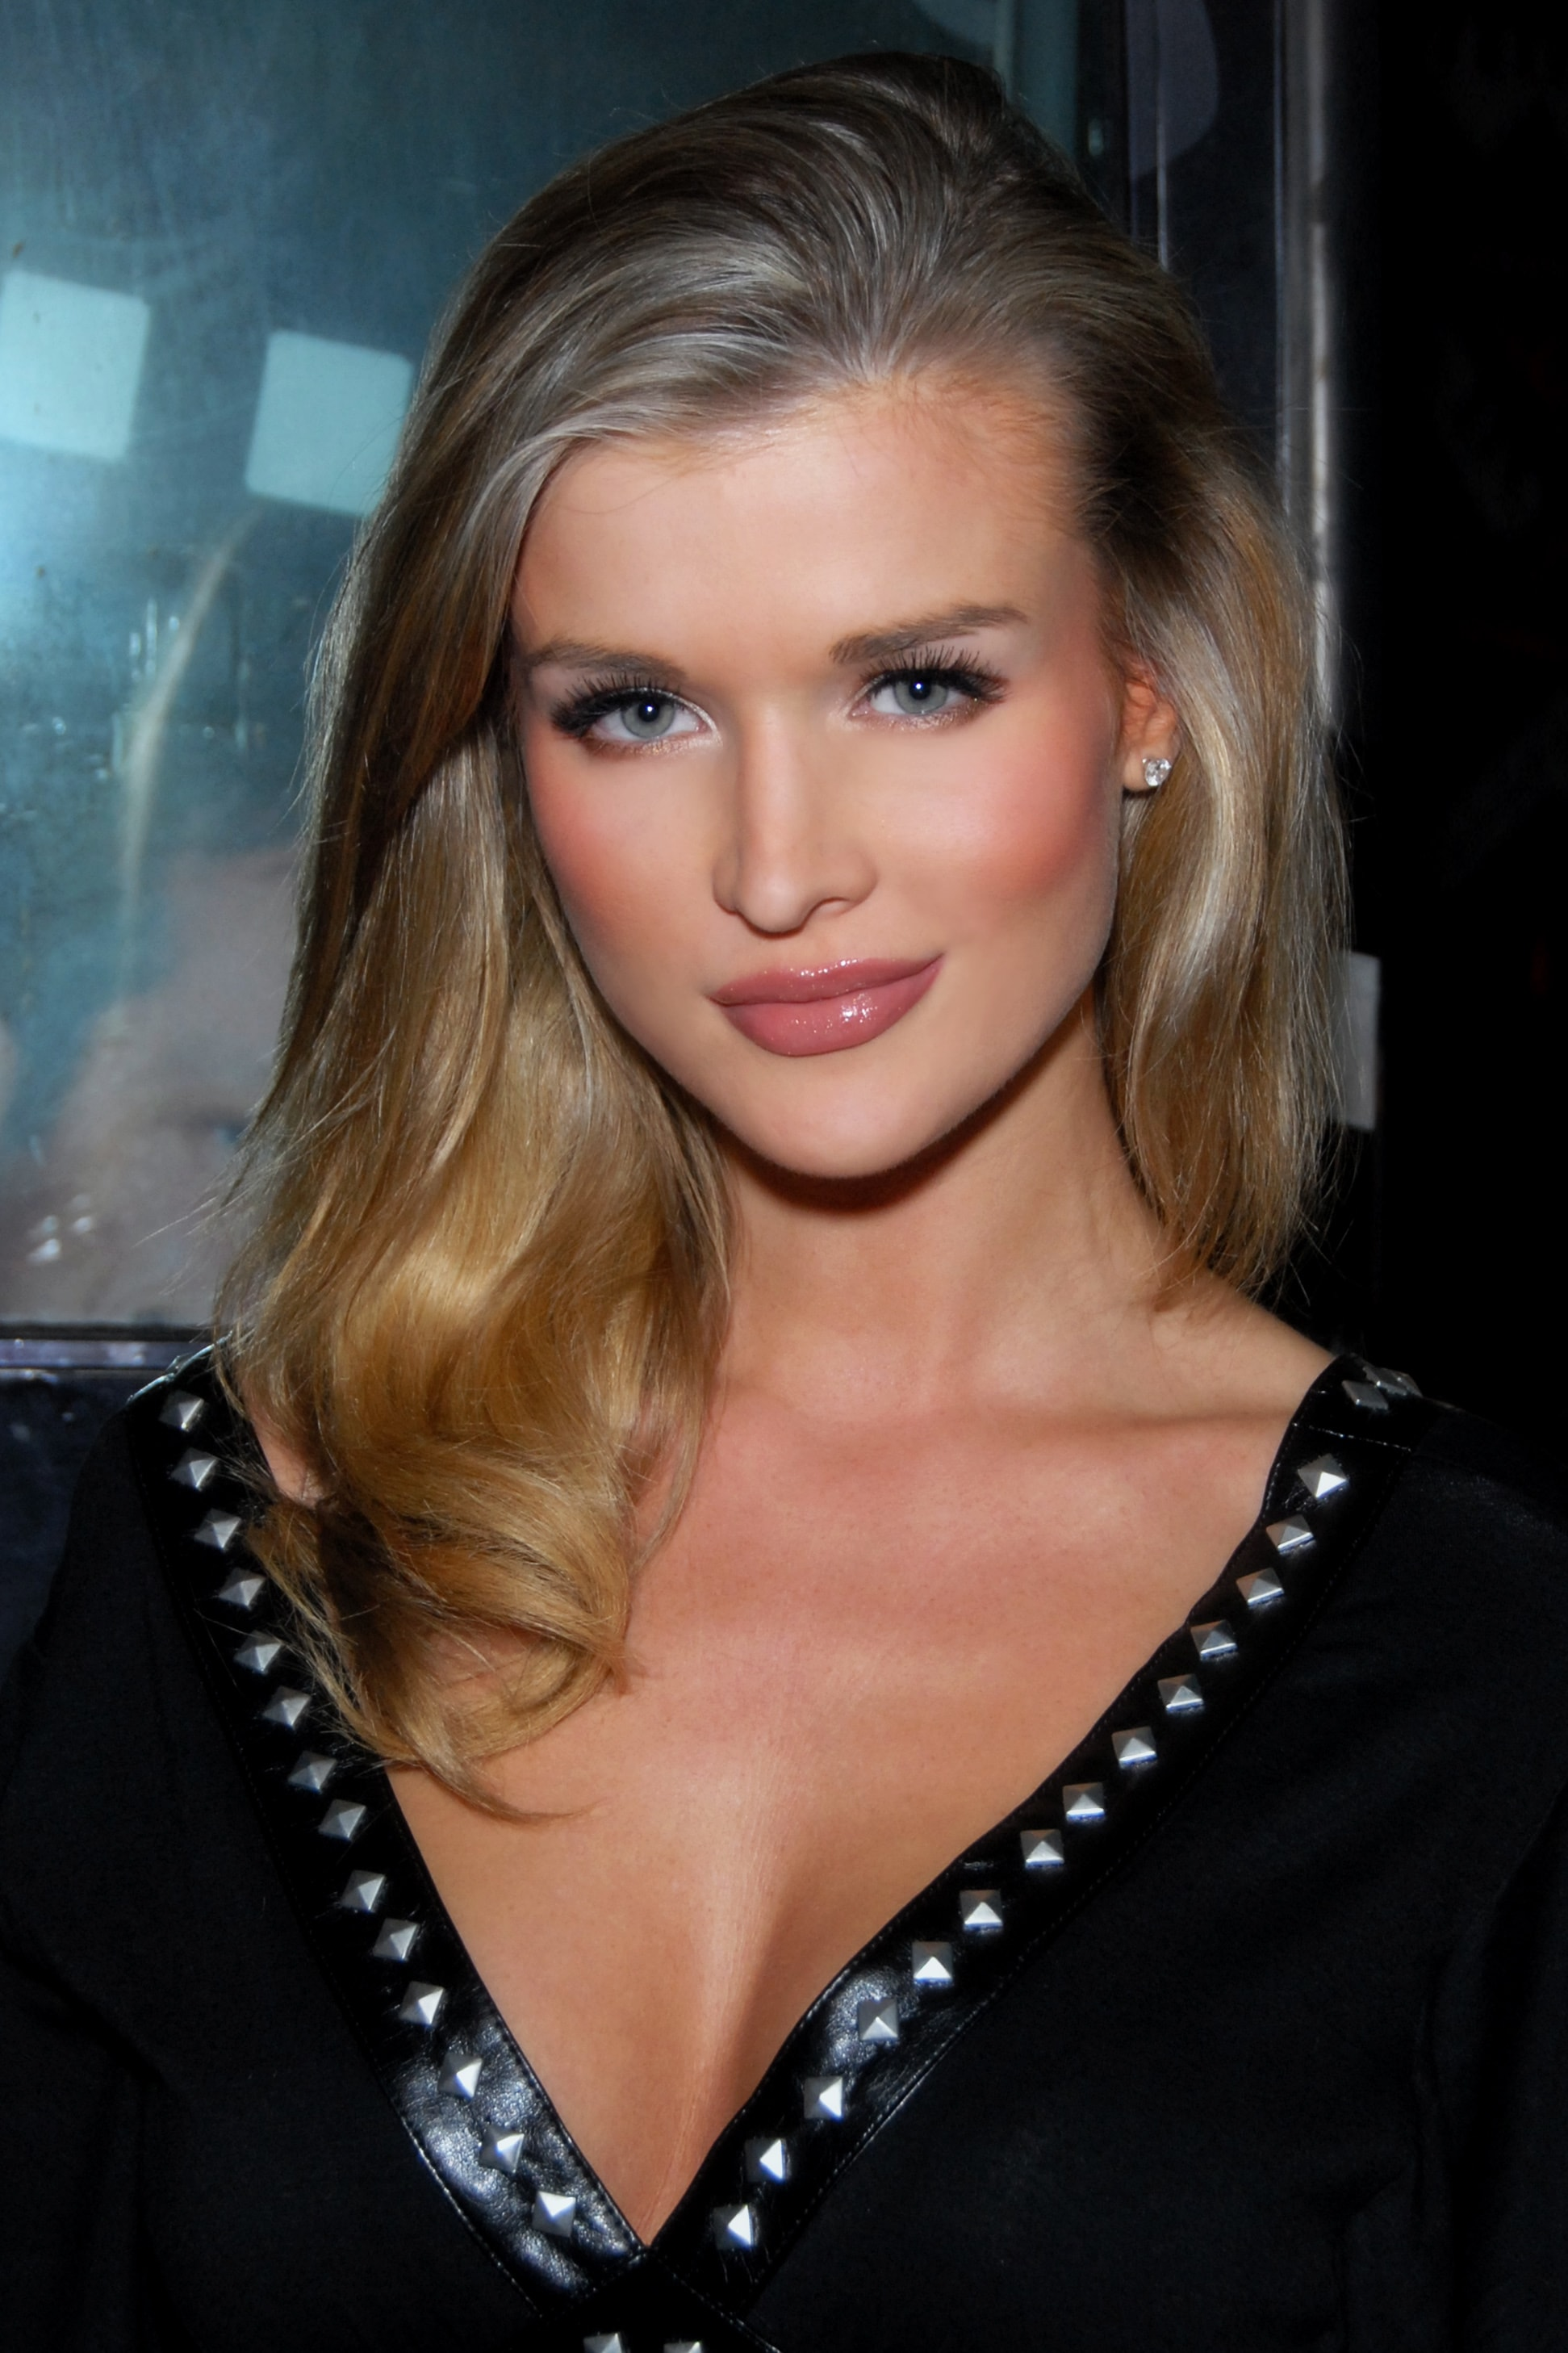 Joanna Krupa Wallpapers